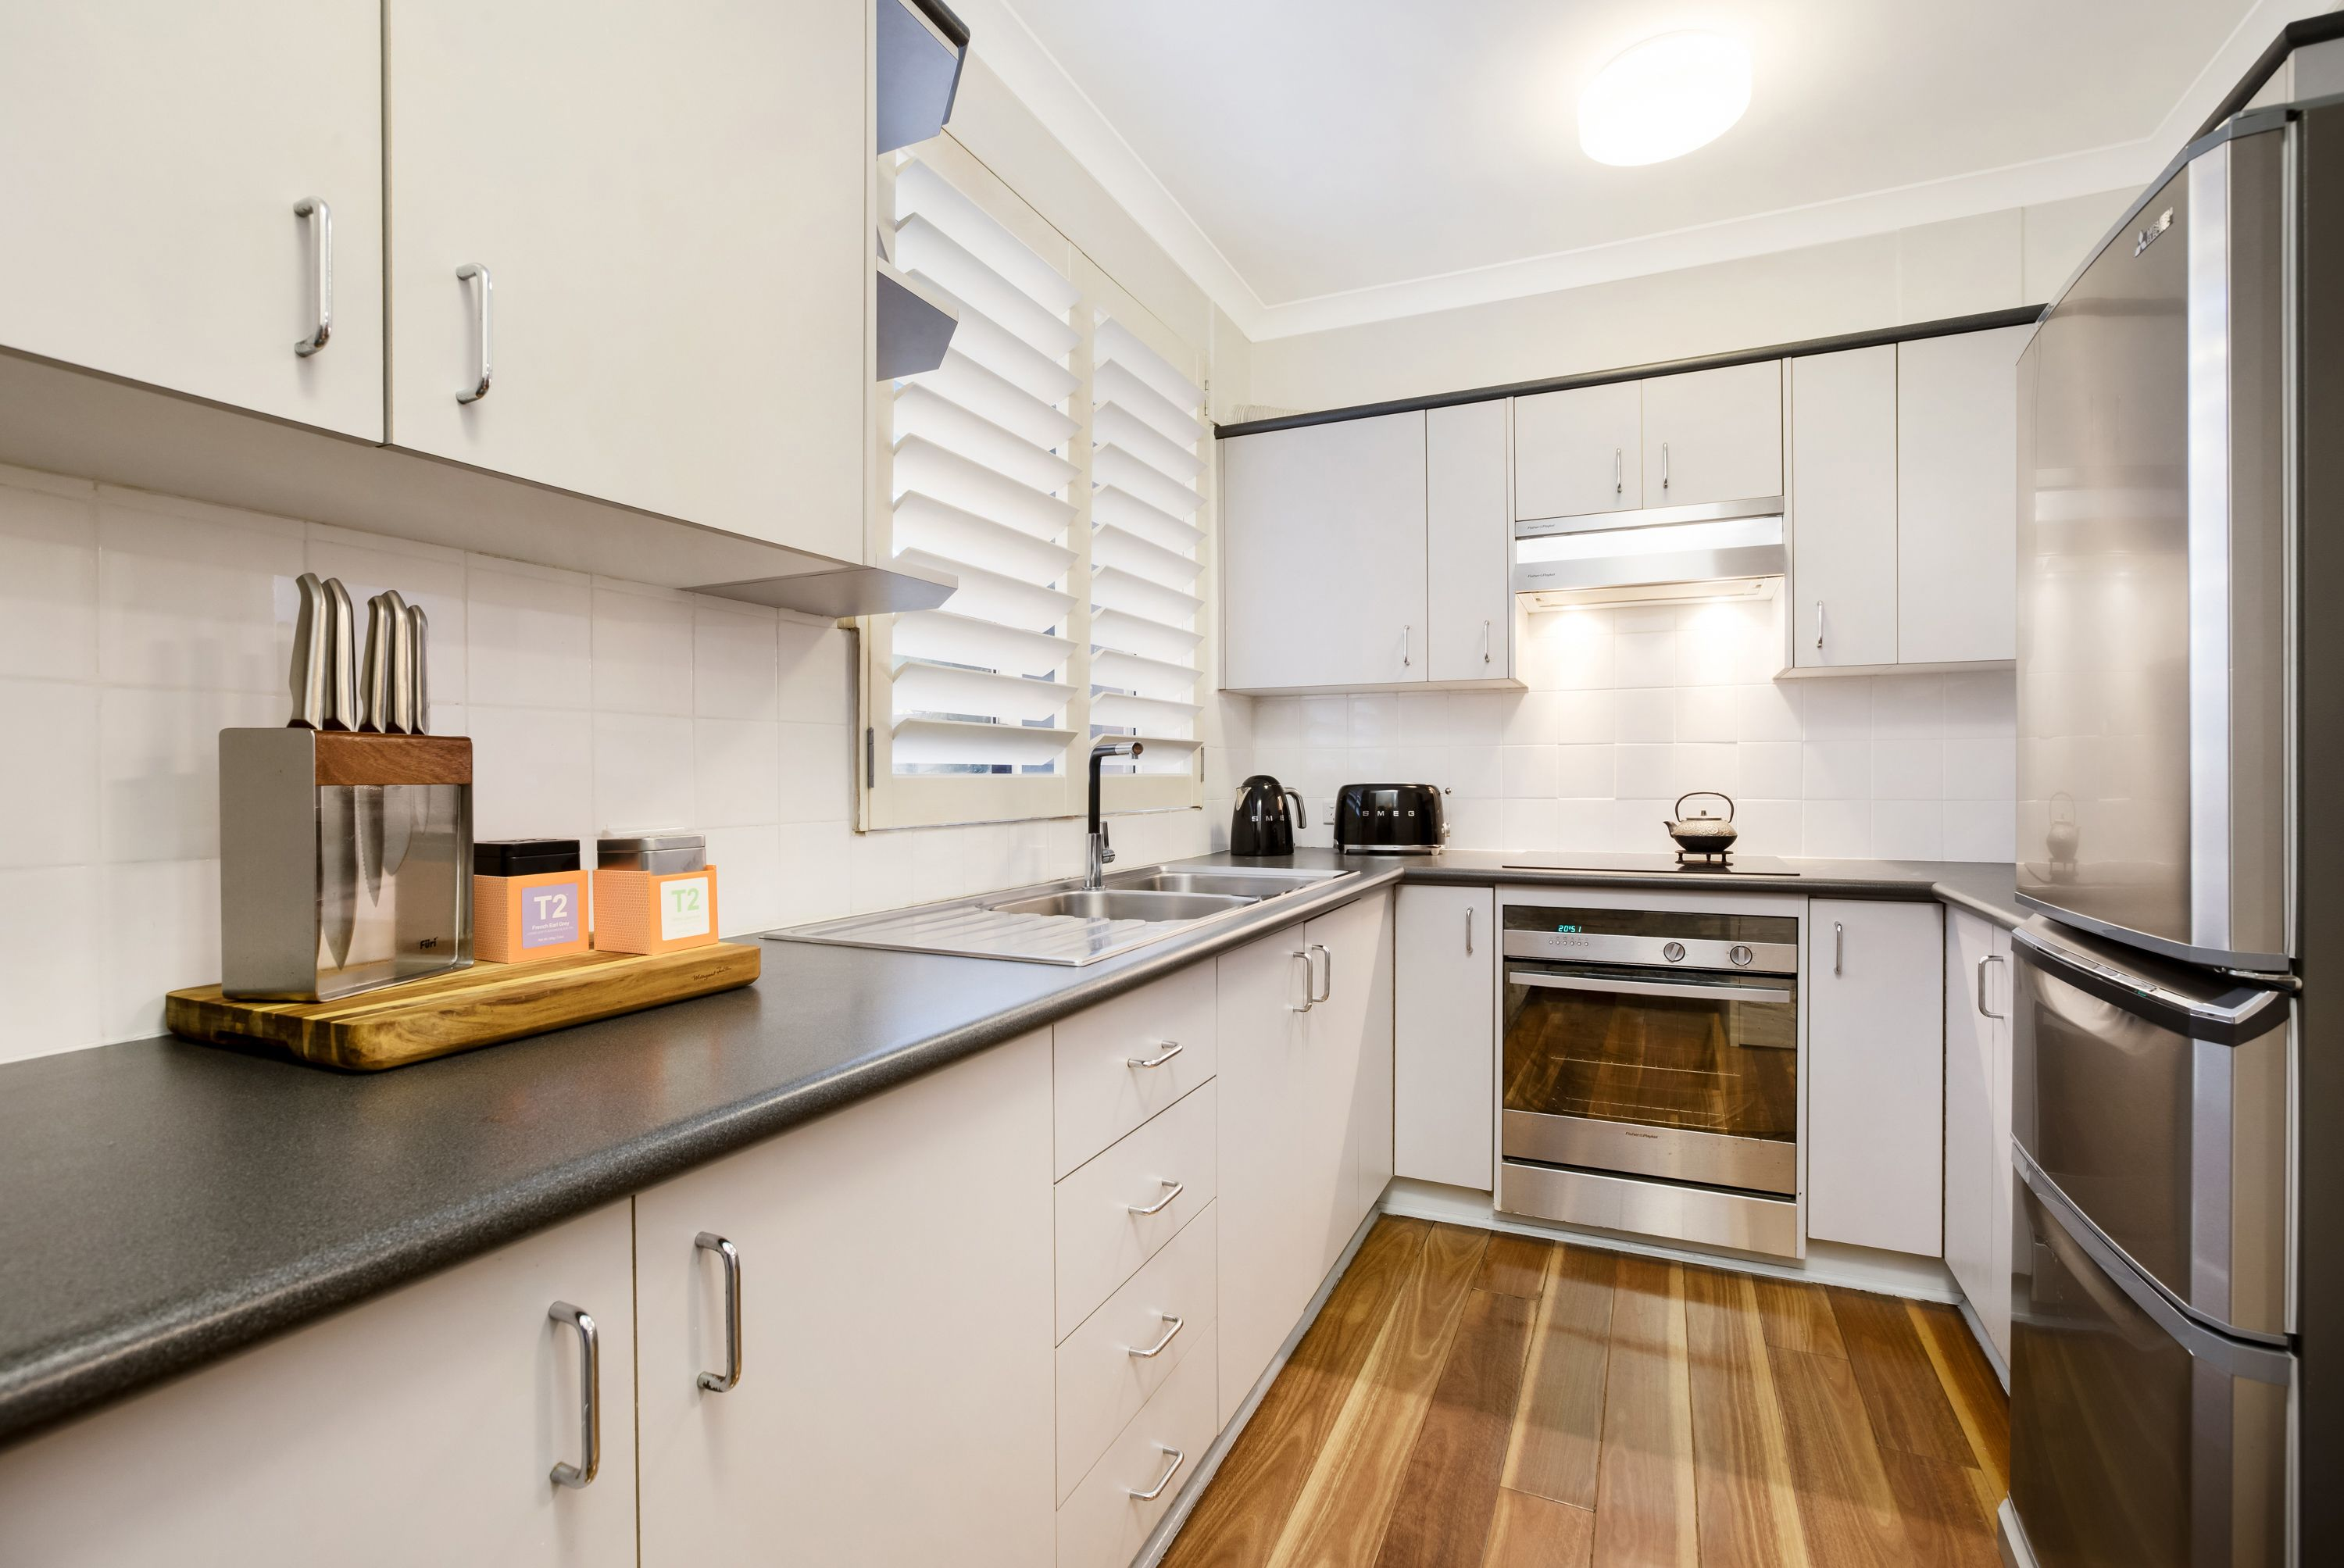 Kitchens Drummoyne 7 54 58 Alexandra Street Drummoyne Nsw 2047 Sold Apartment